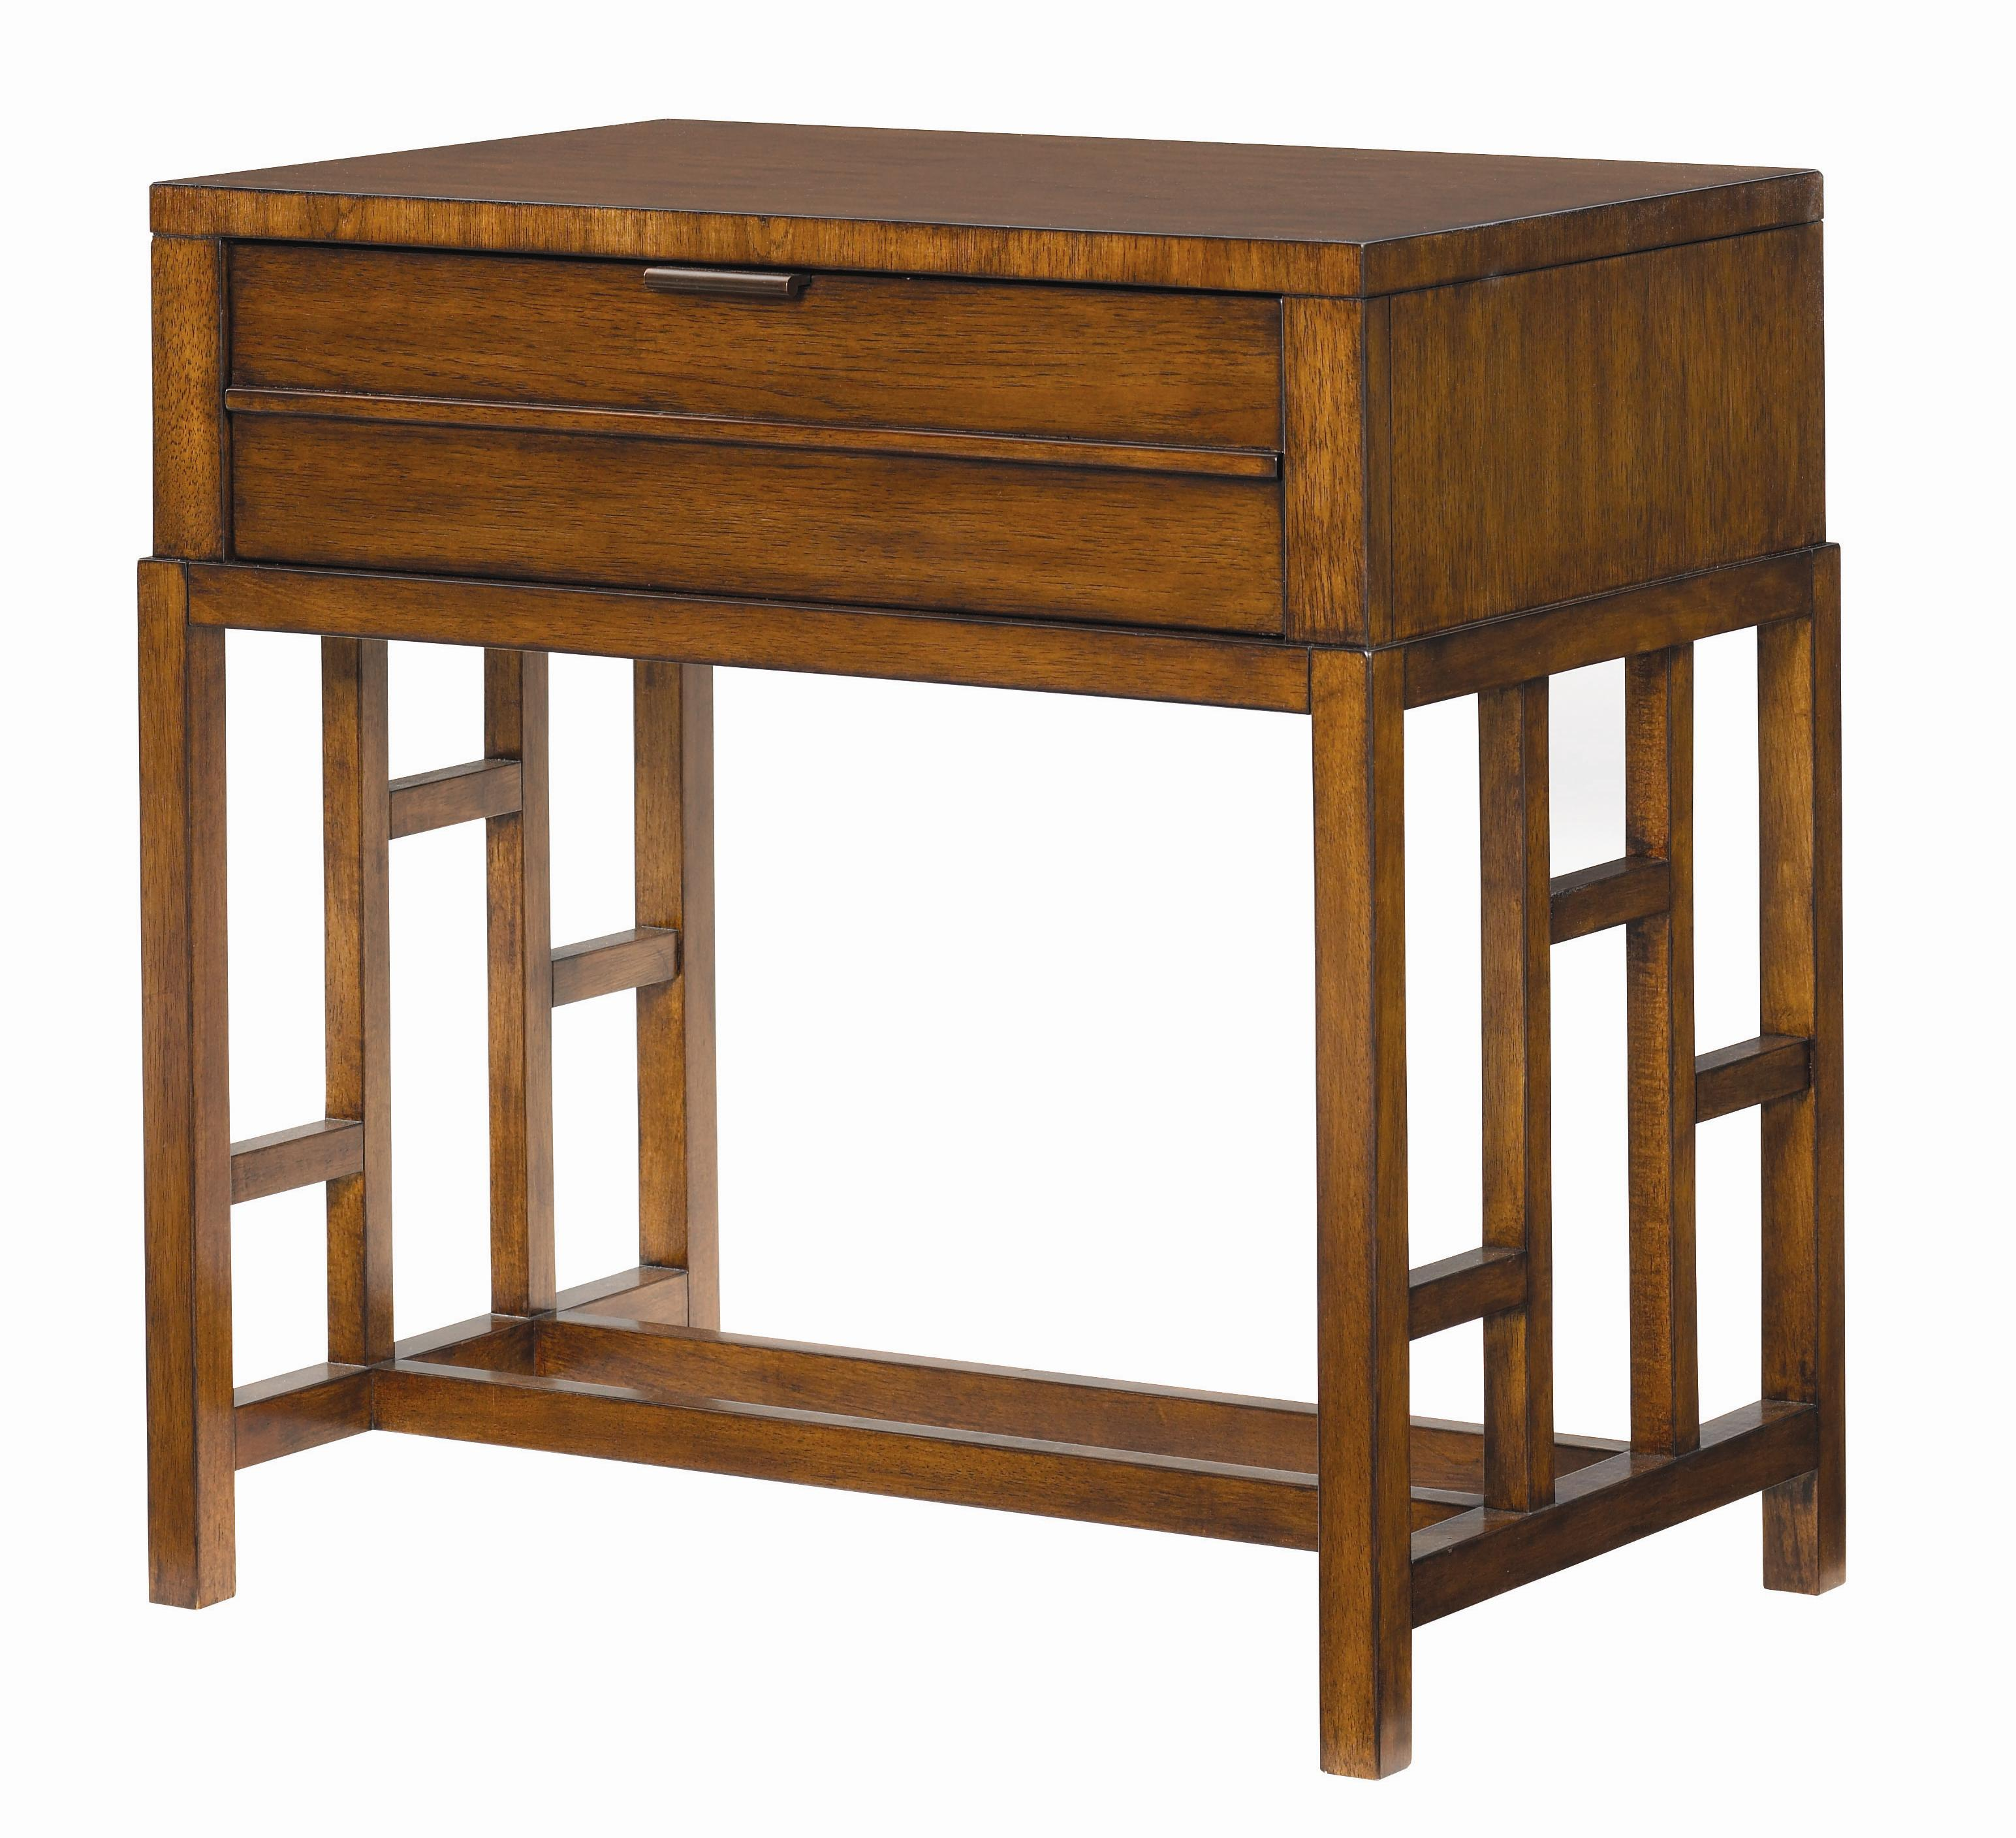 Tommy Bahama Home Ocean Club Kaloa Nightstand - Item Number: 536-622